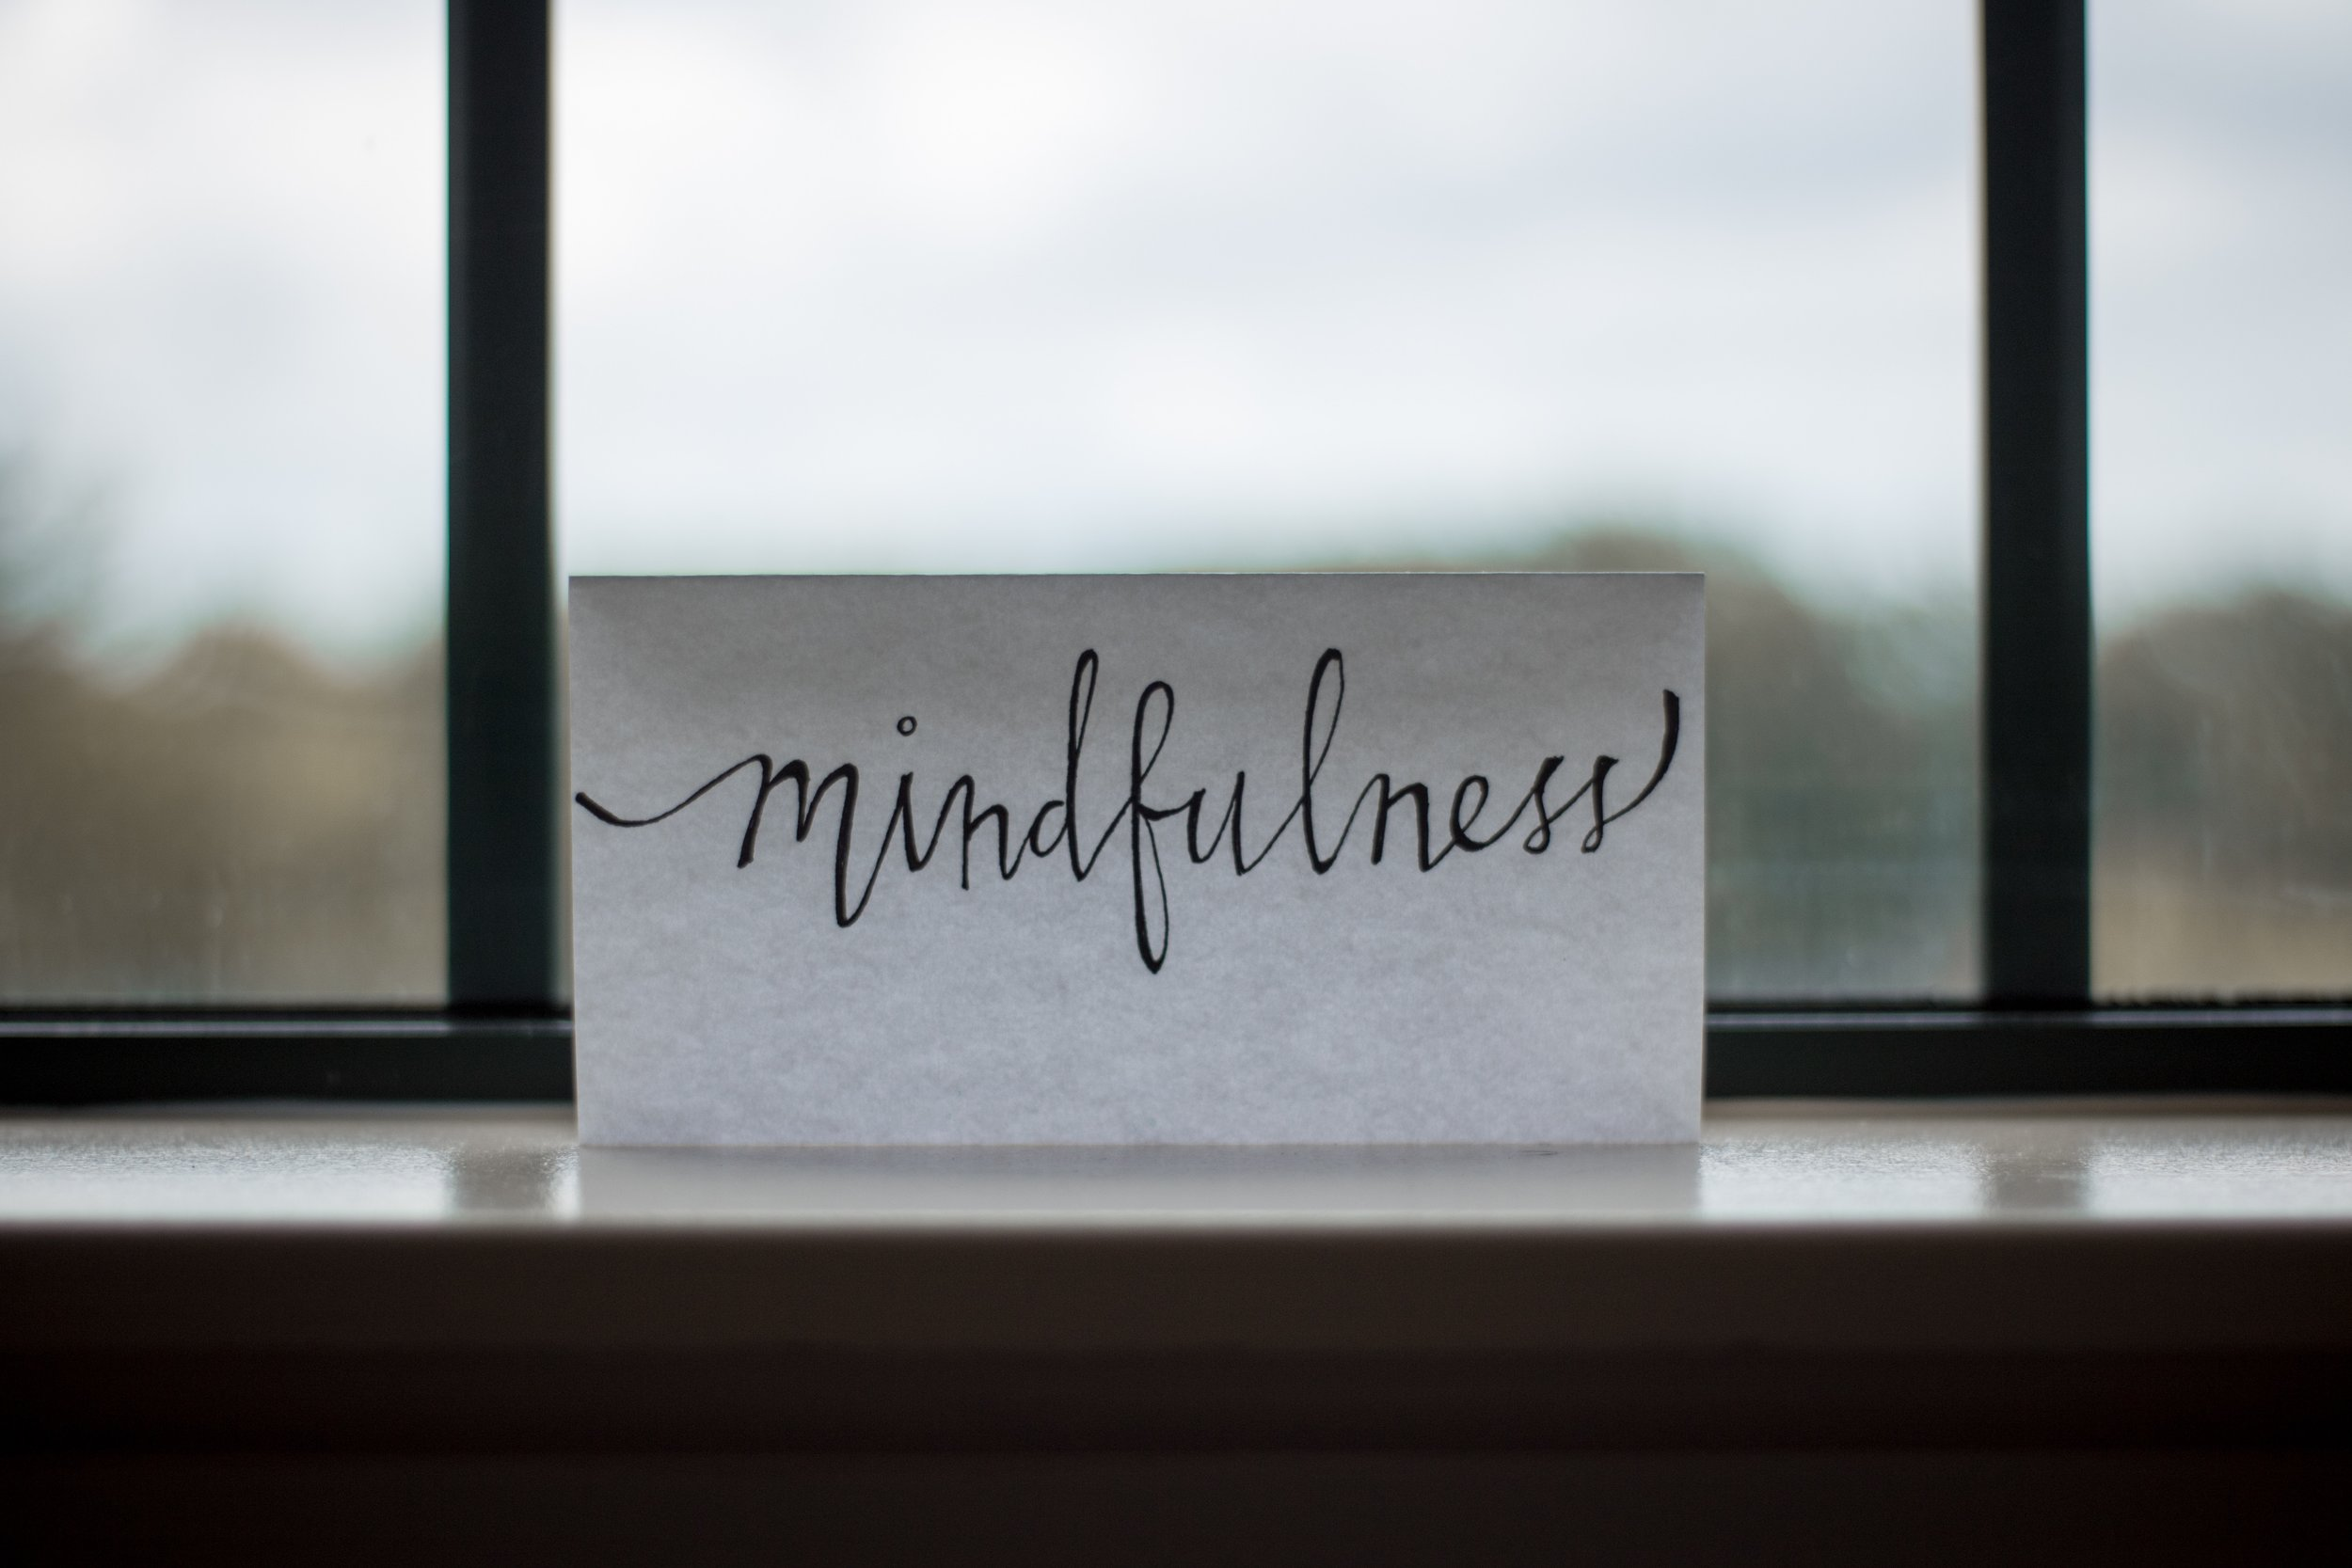 Monitor your thoughts. Mindfulness encourages healing.